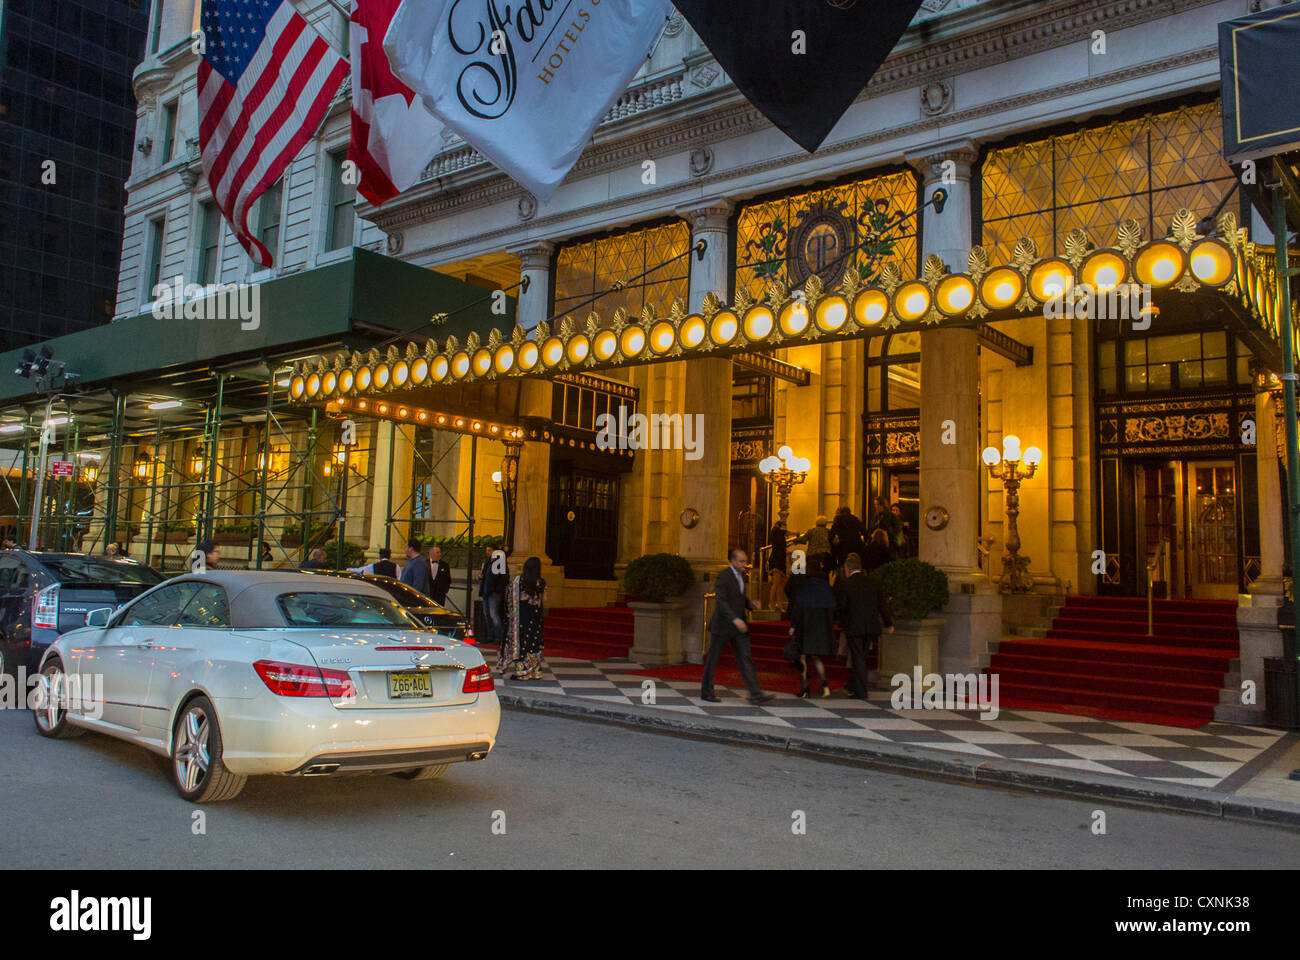 New York, Street Scenes, Outside, Front of the Plaza Hotel, Manhattan, 5 star hotel entrance - Stock Image